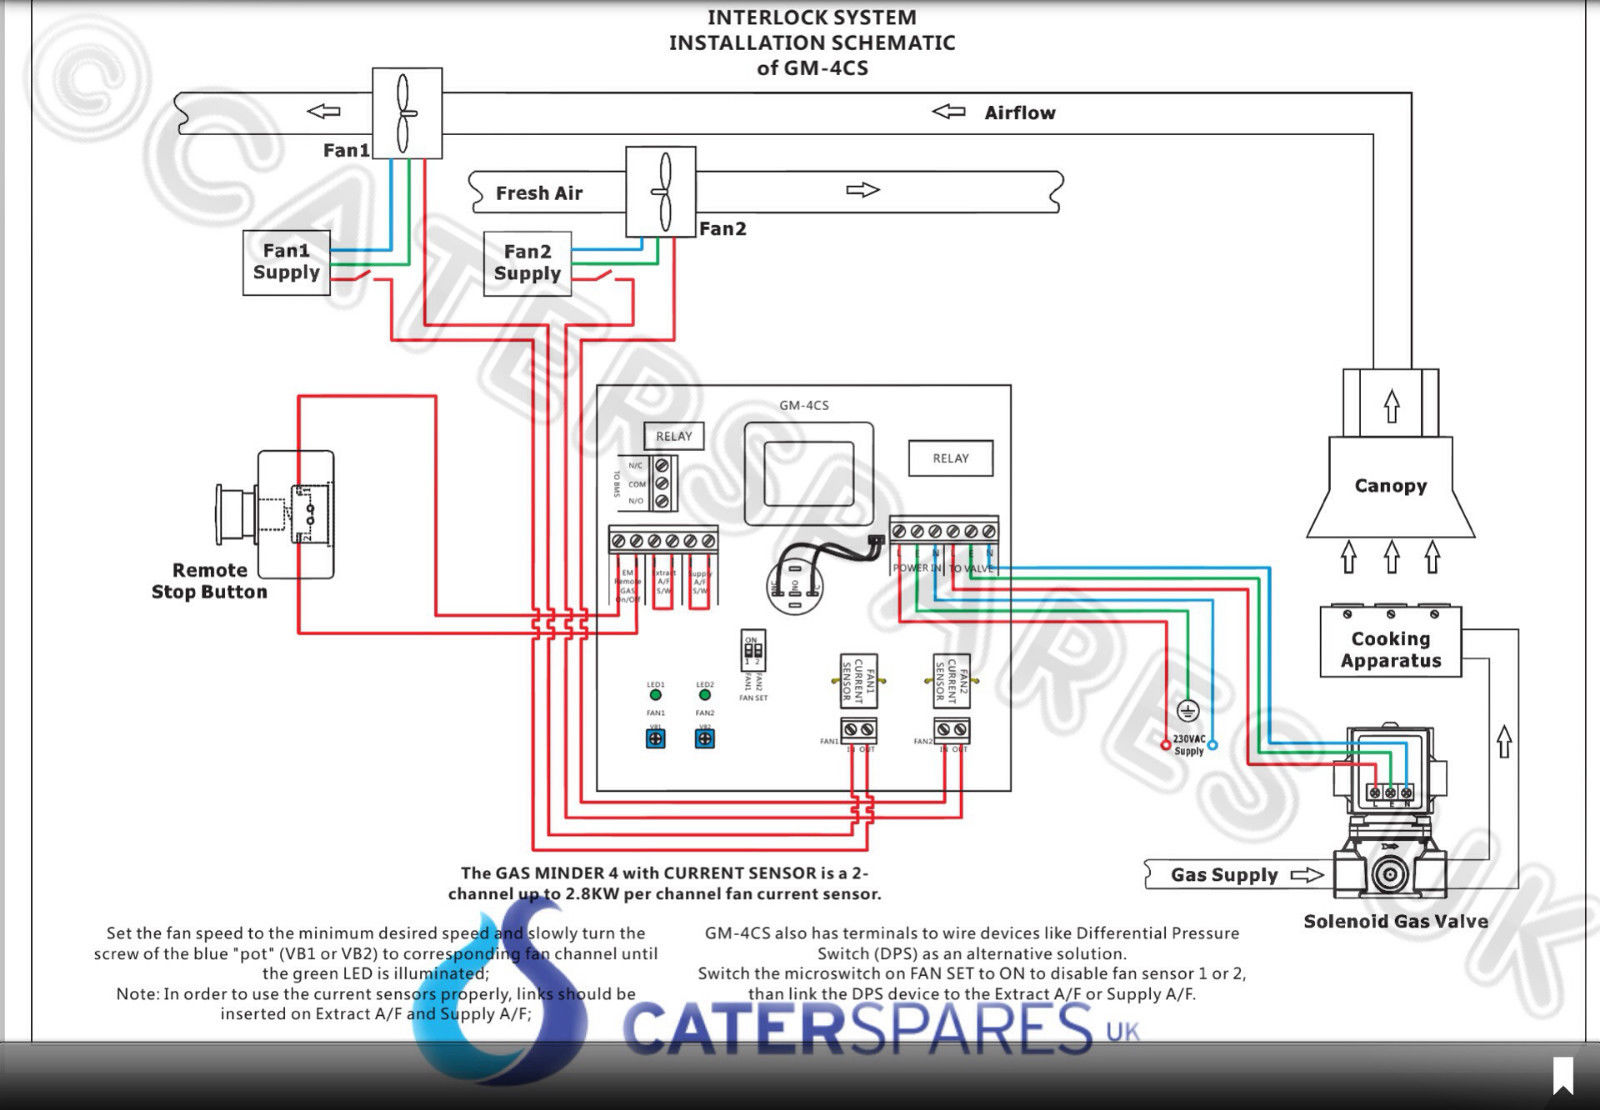 hight resolution of current sensor commercial gas interlock system kit 1 flow sensor wiring diagram water pressure switch wiring